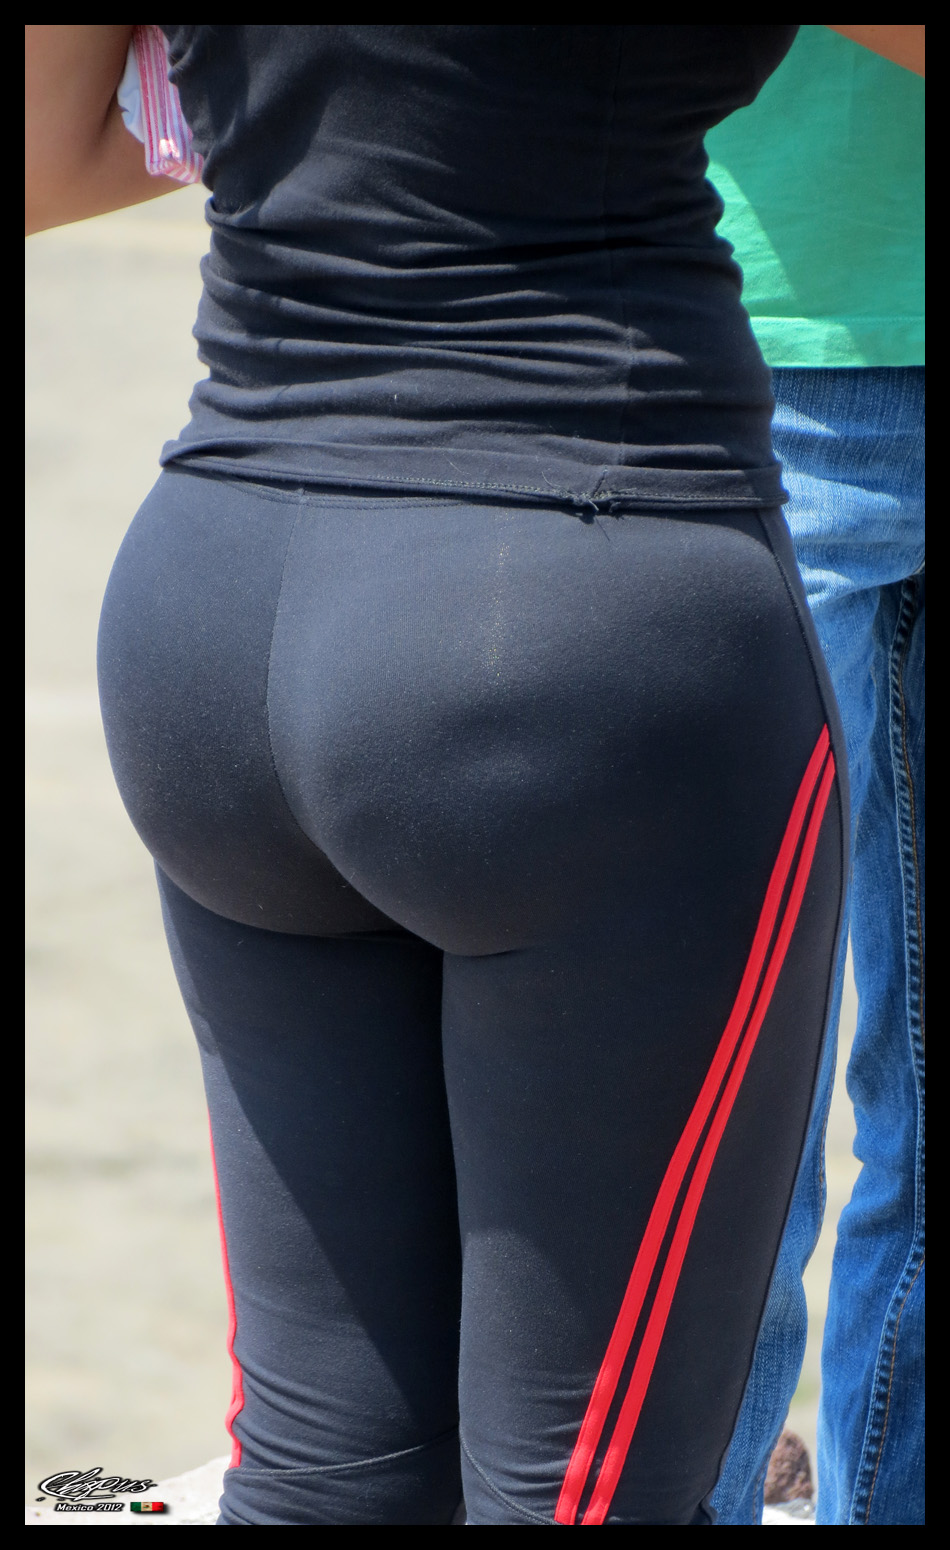 Perfectly Round Ass 97